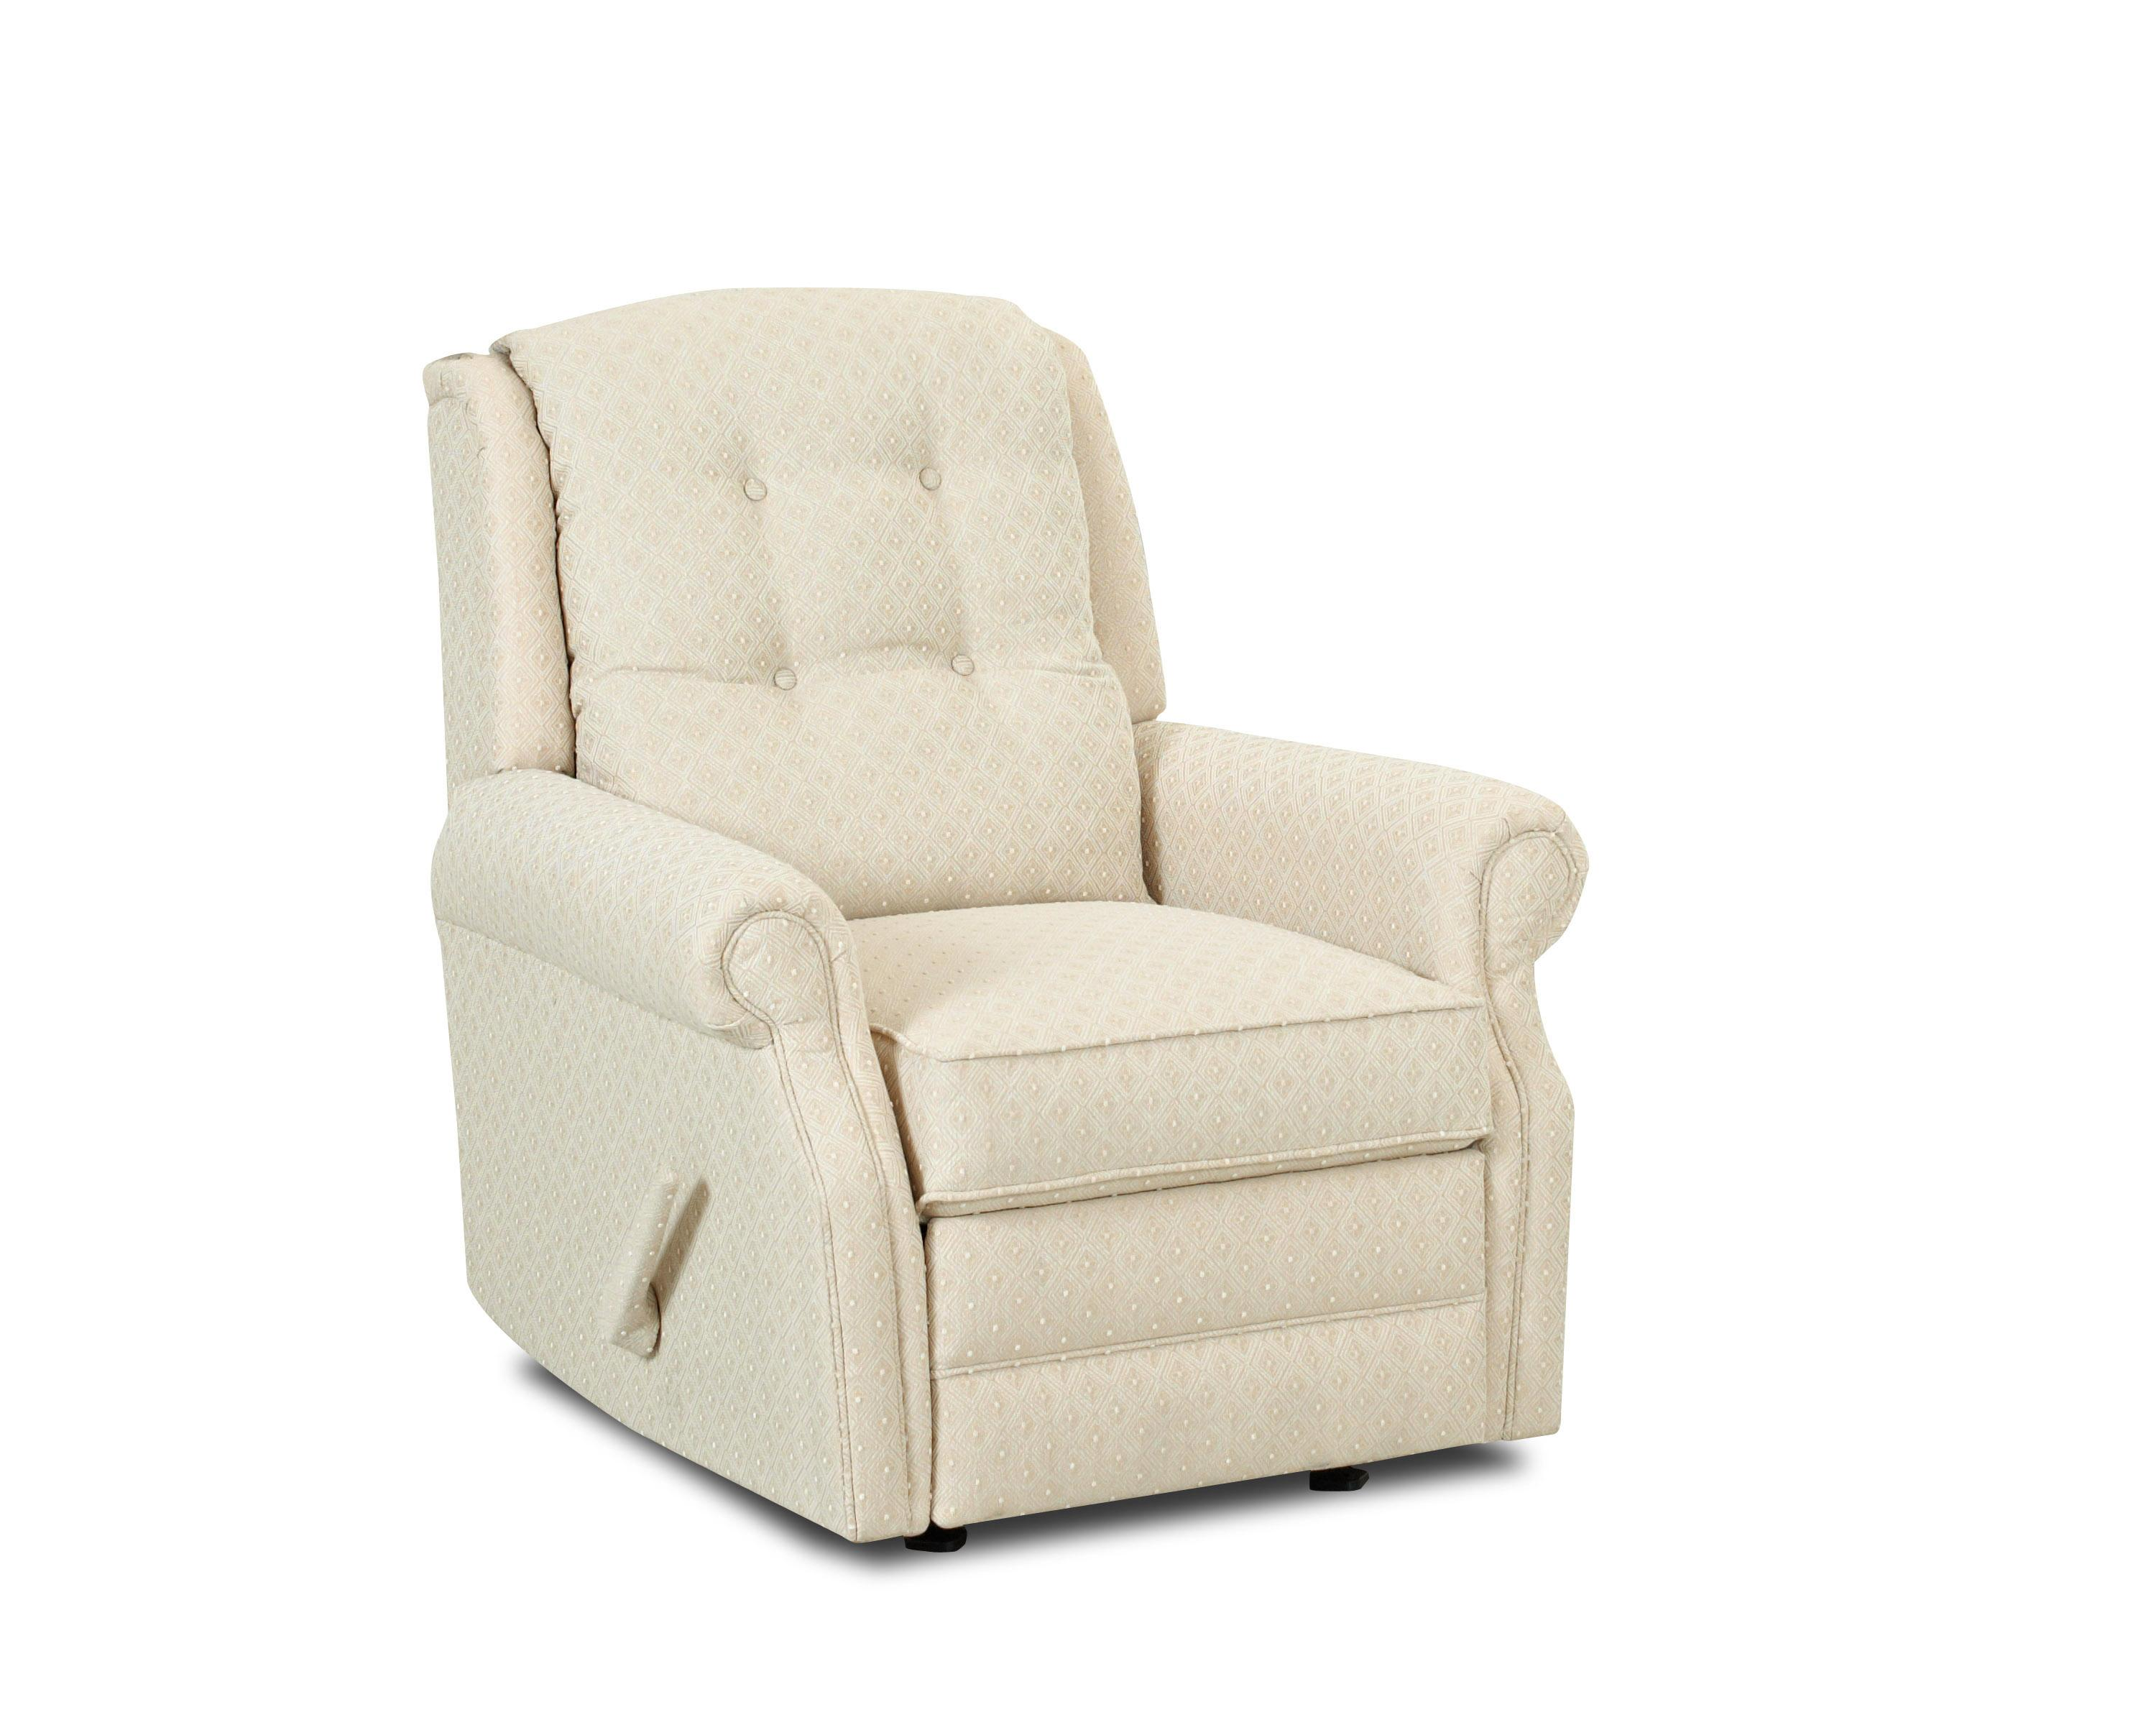 Wonderful image of Transitional Manual Rocking Reclining Chair with Button Tufting by  with #63492F color and 3000x2400 pixels